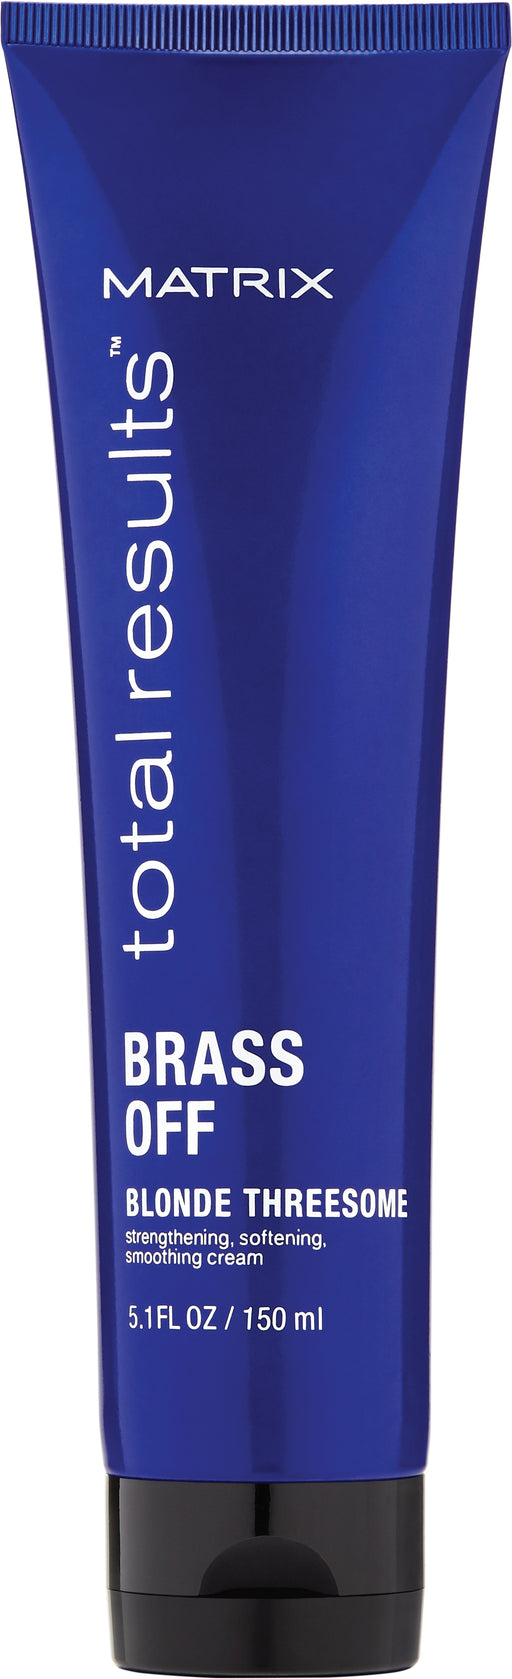 MATRIX TOTAL RESULTS BRASS OFF BLONDE THREESOME 150ML